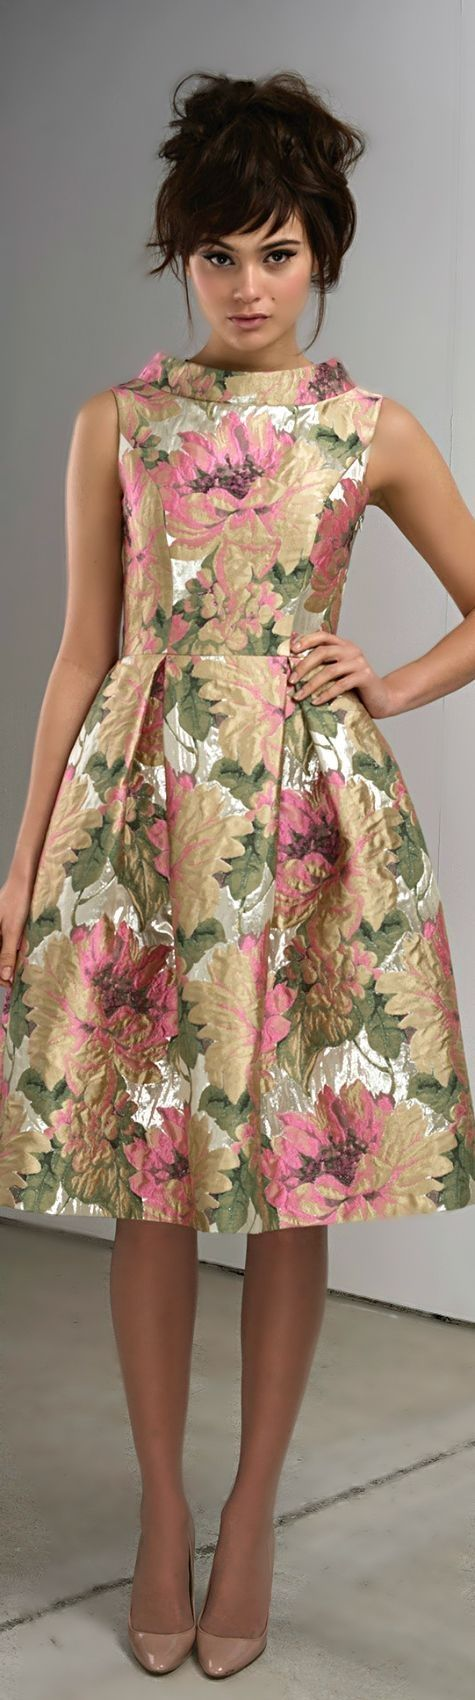 Vintage Floral Print http://sulia.com/channel/fashion/f/7b52759e-f2e3-4980-92ea-0b8441de2fd6/?source=pin&action=share&btn=small&form_factor=desktop&sharer_id=125430493&is_sharer_author=true&pinner=125430493